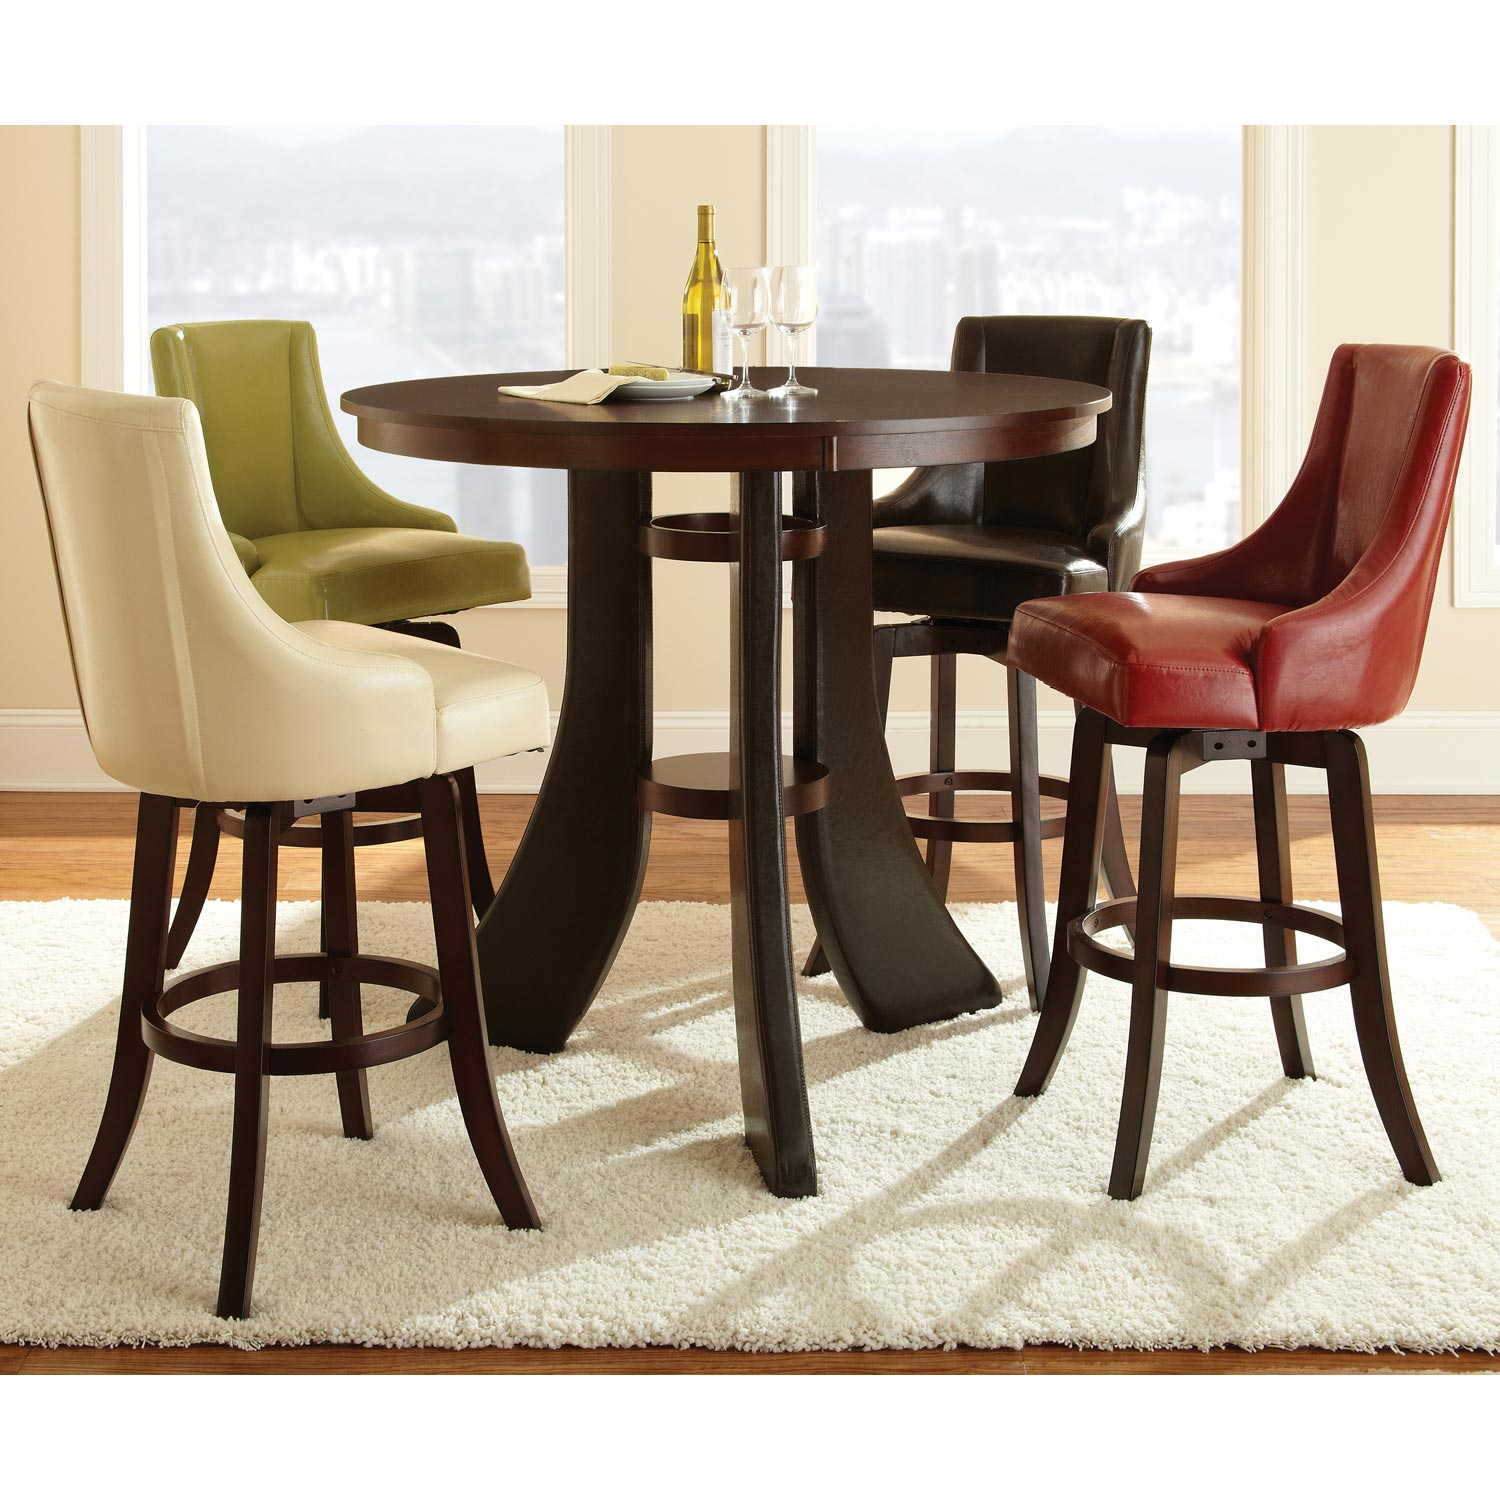 "Brooks 30"" Upholstered Swivel Bar Stool - Red (Set of 2) - SSC-BK550CCR"